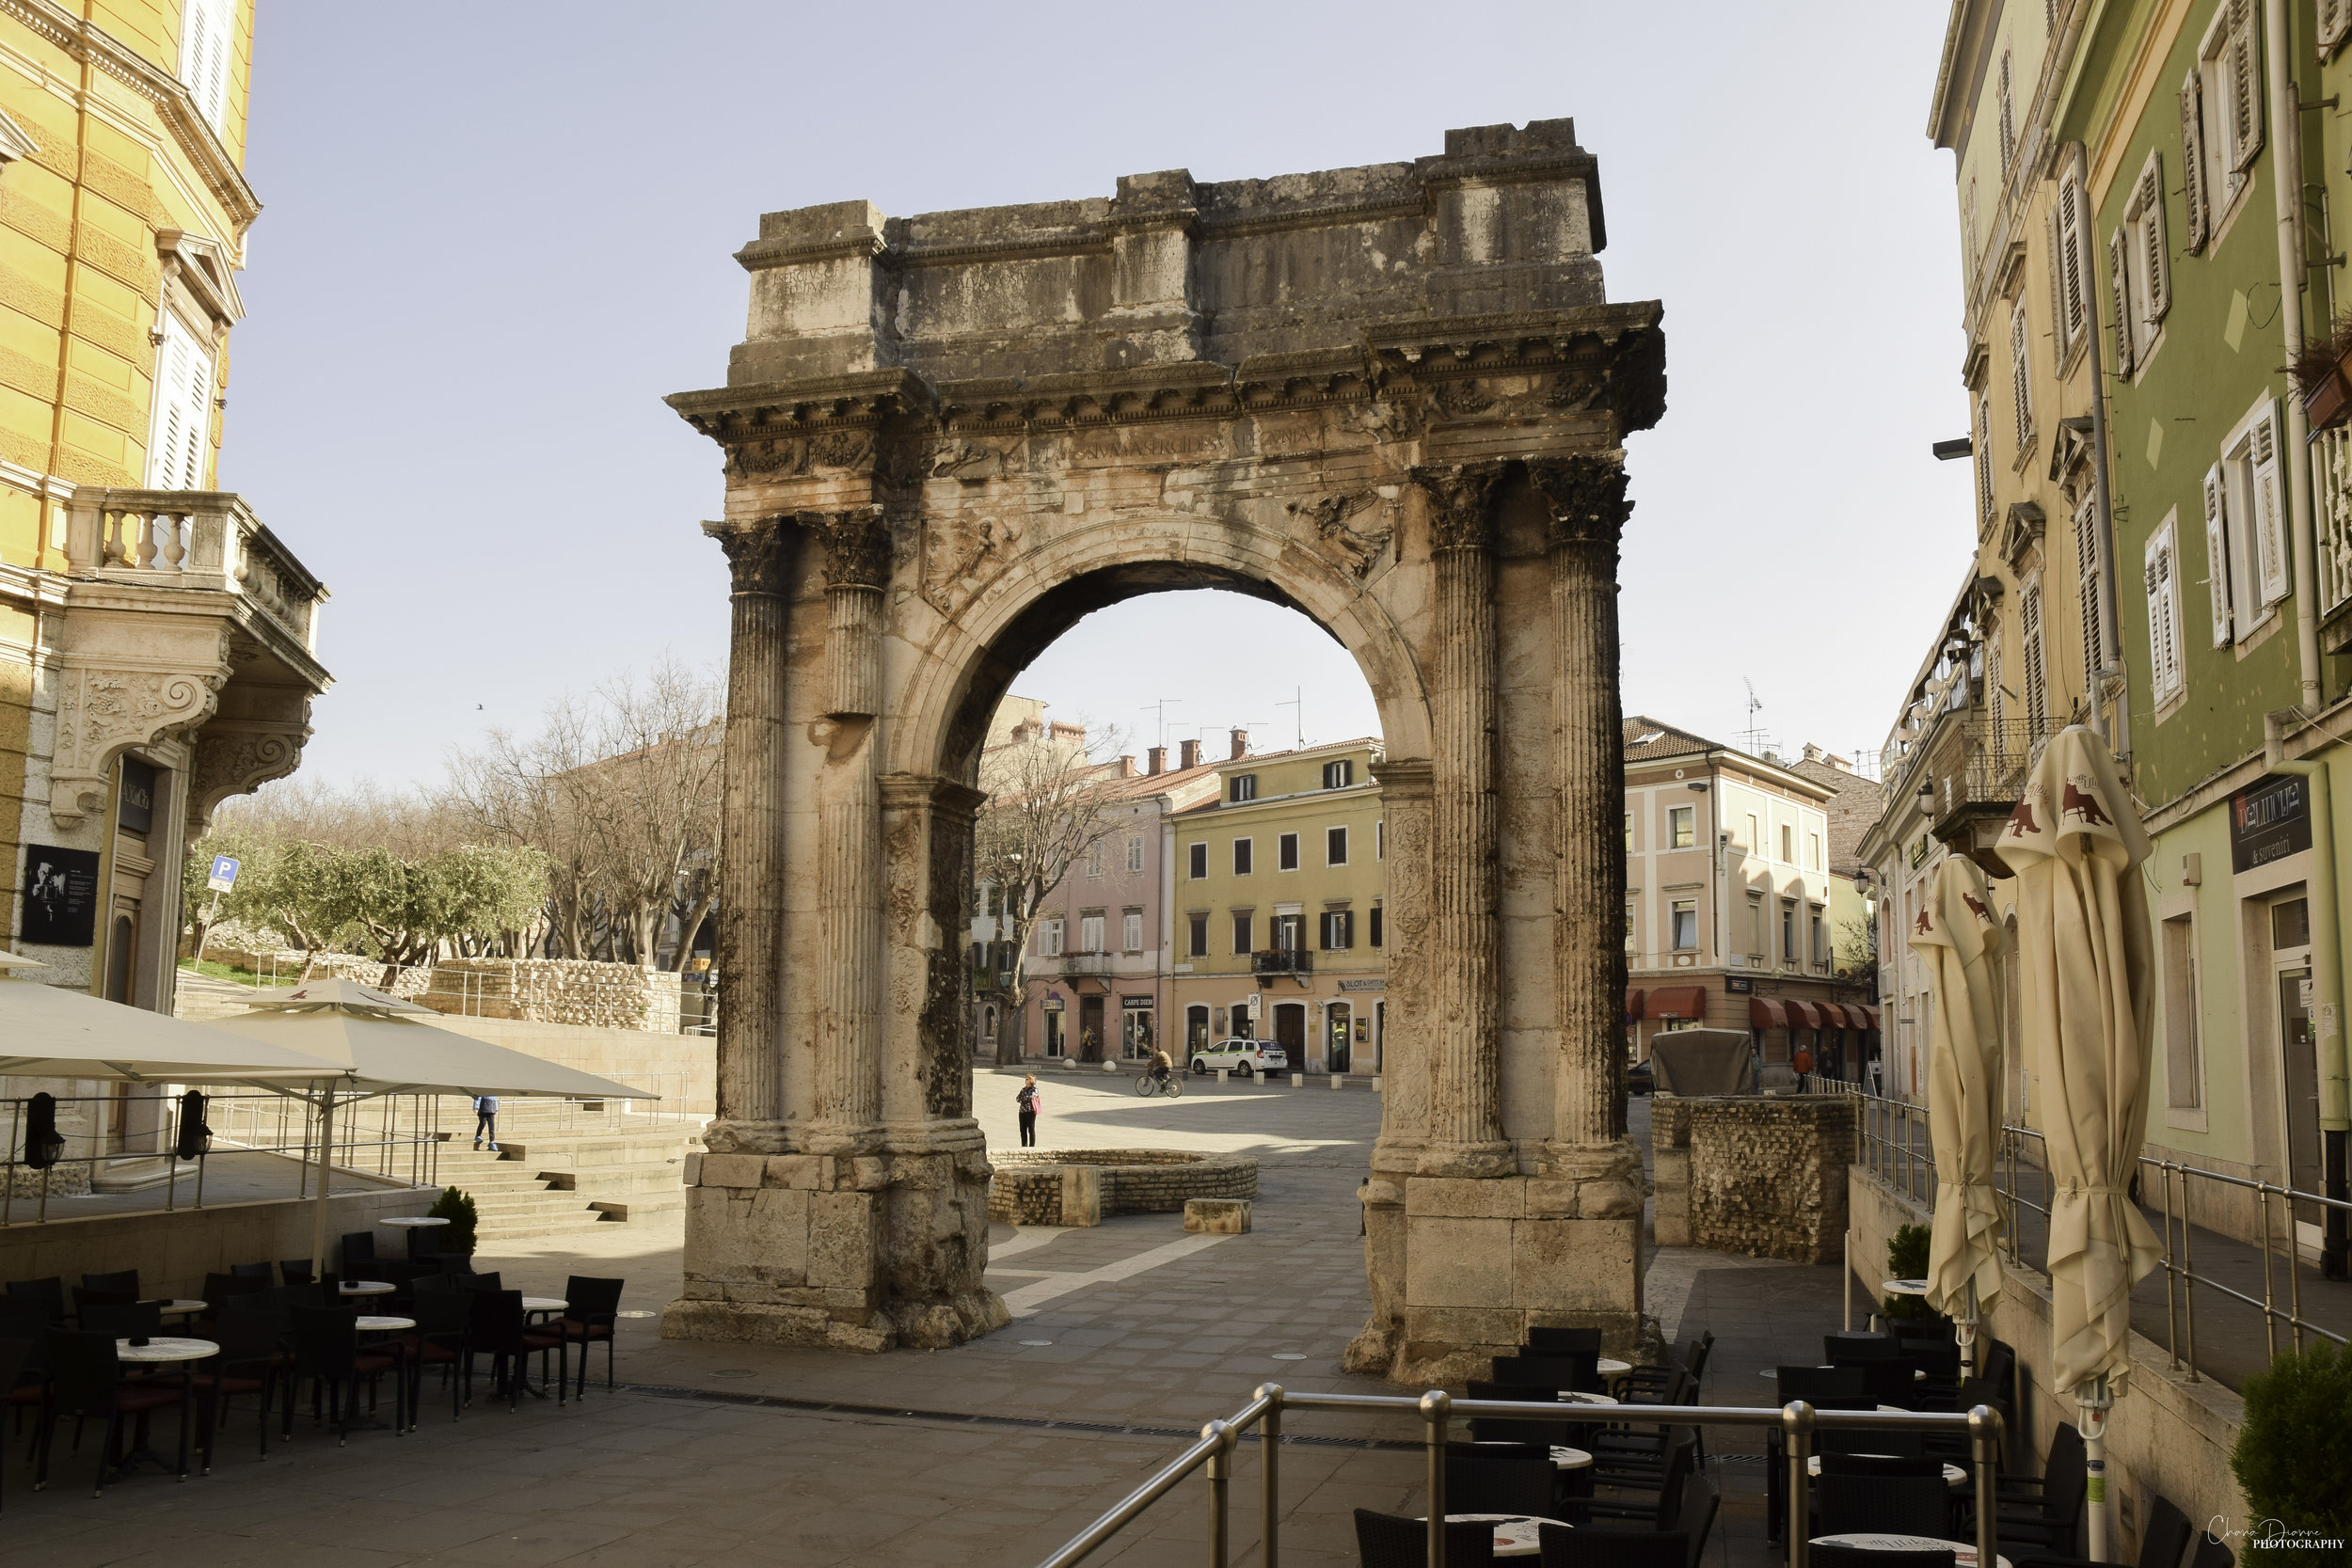 The Arch of Sergii is another landmark. It is a triumphal arch commemorating the Sergii family who were powerful officials in Pula.  Personally, we did not think the arch was impressive, but I do appreciate the significance of the arch and how important it is to Pula's history.